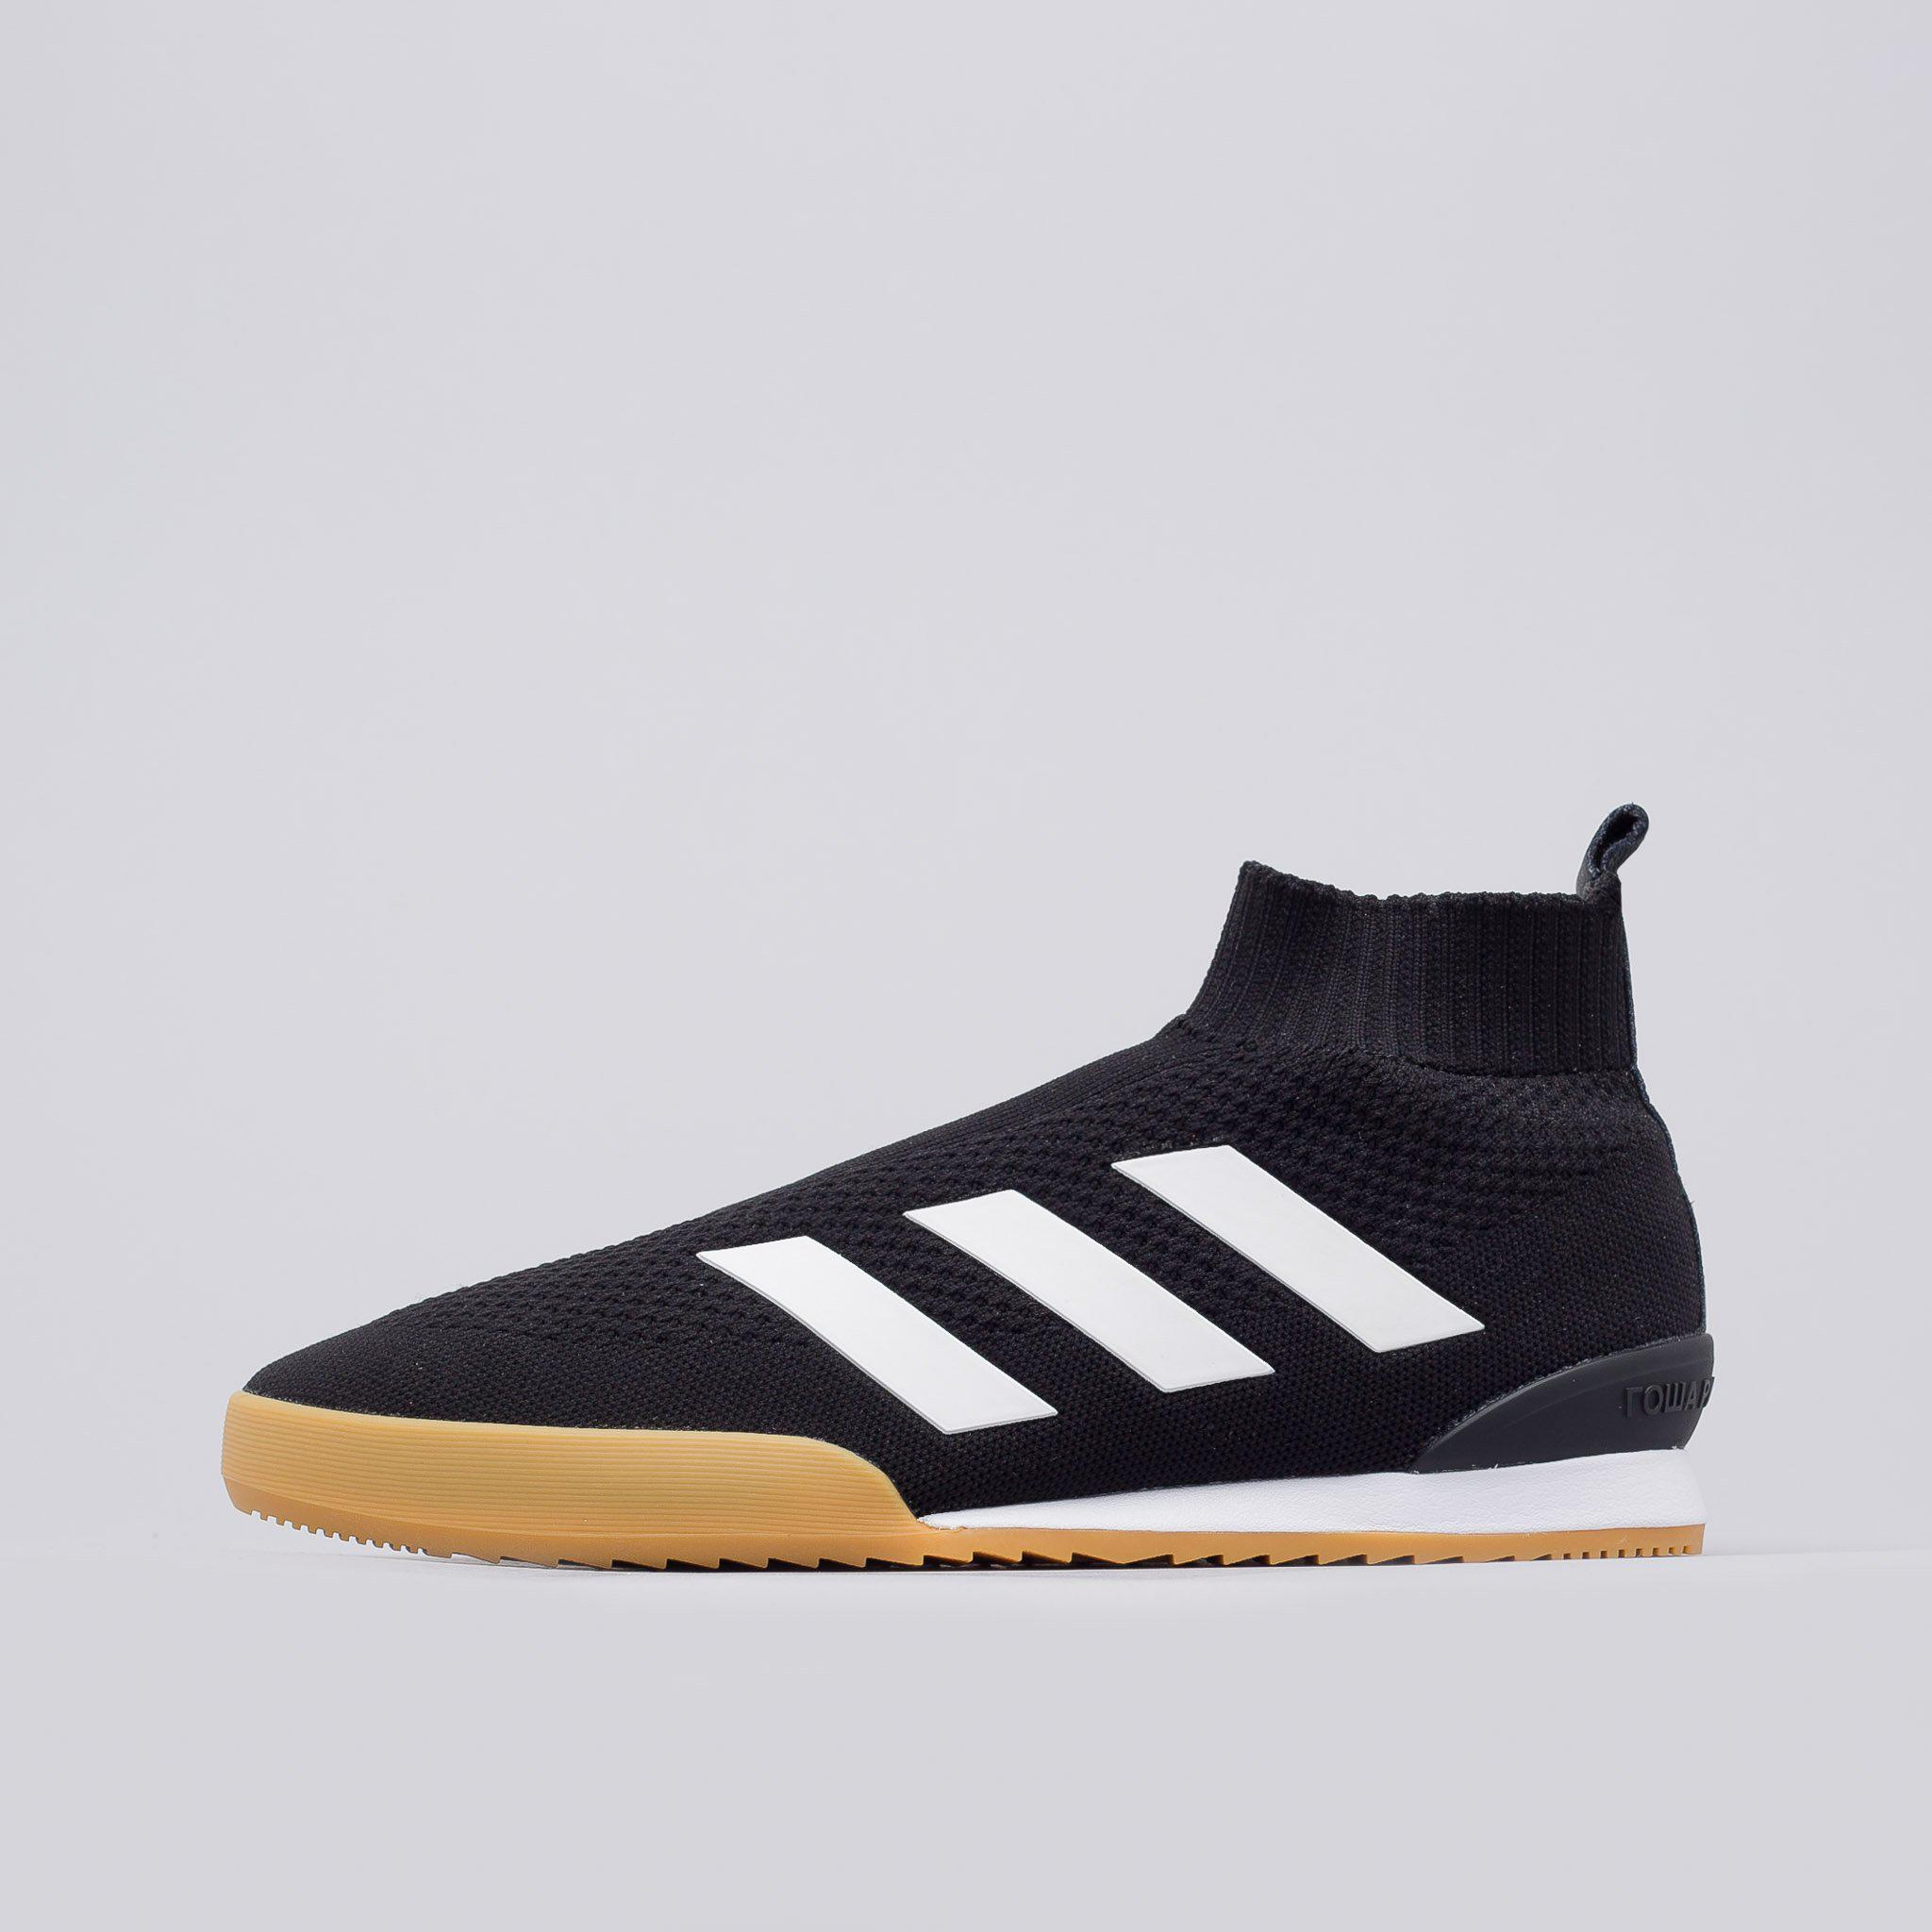 san francisco 0de8a 28136 Gosha Rubchinskiy X Adidas Ace Super Shoes In Black for men